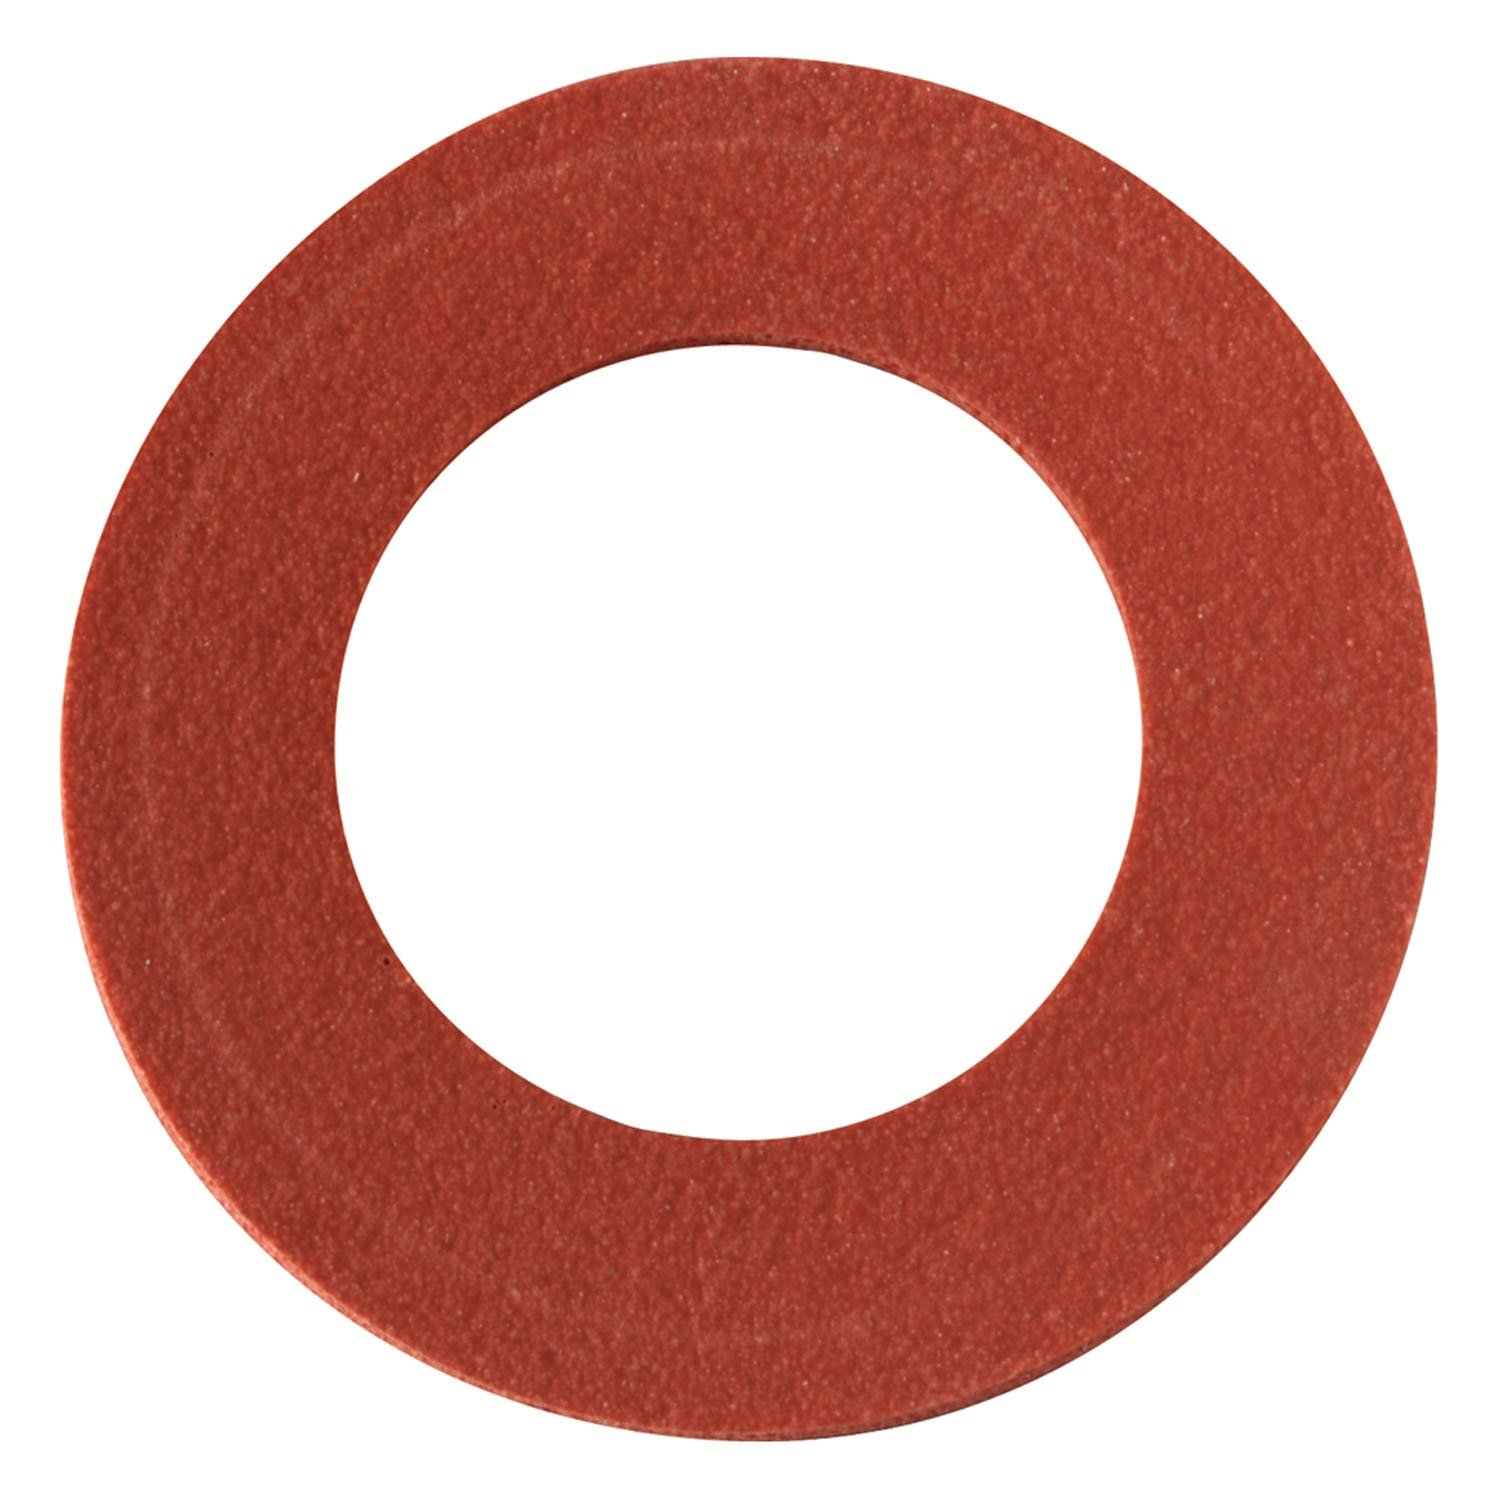 3M 50051131071457 Replacement Inhalation Port Gasket (Pack of 20) by 3M